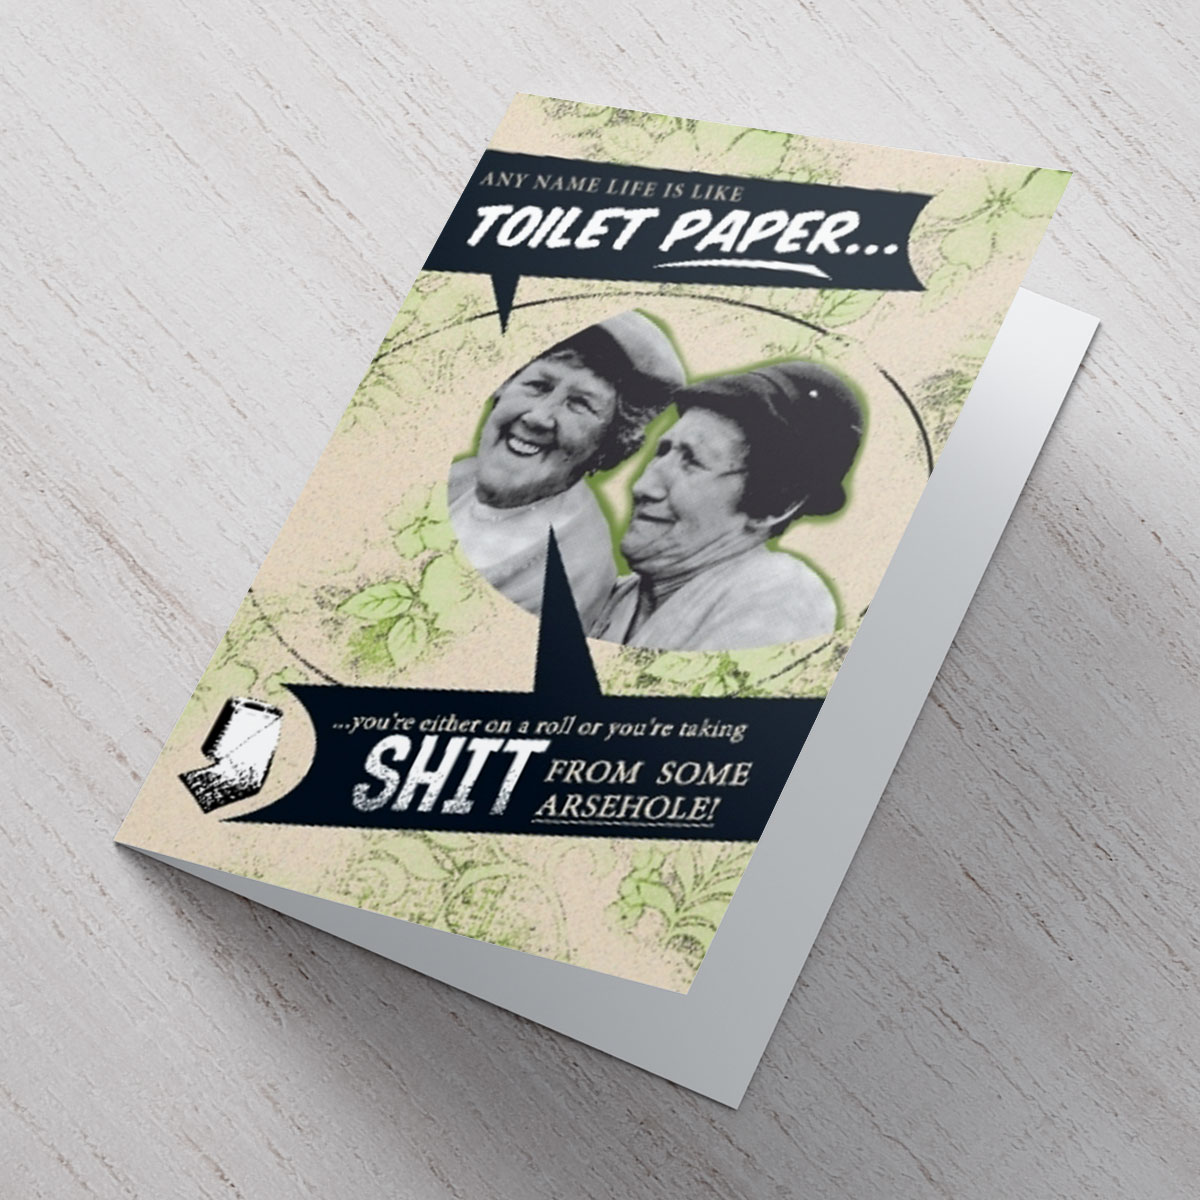 Personalised Card  Life Is Like Toilet Paper